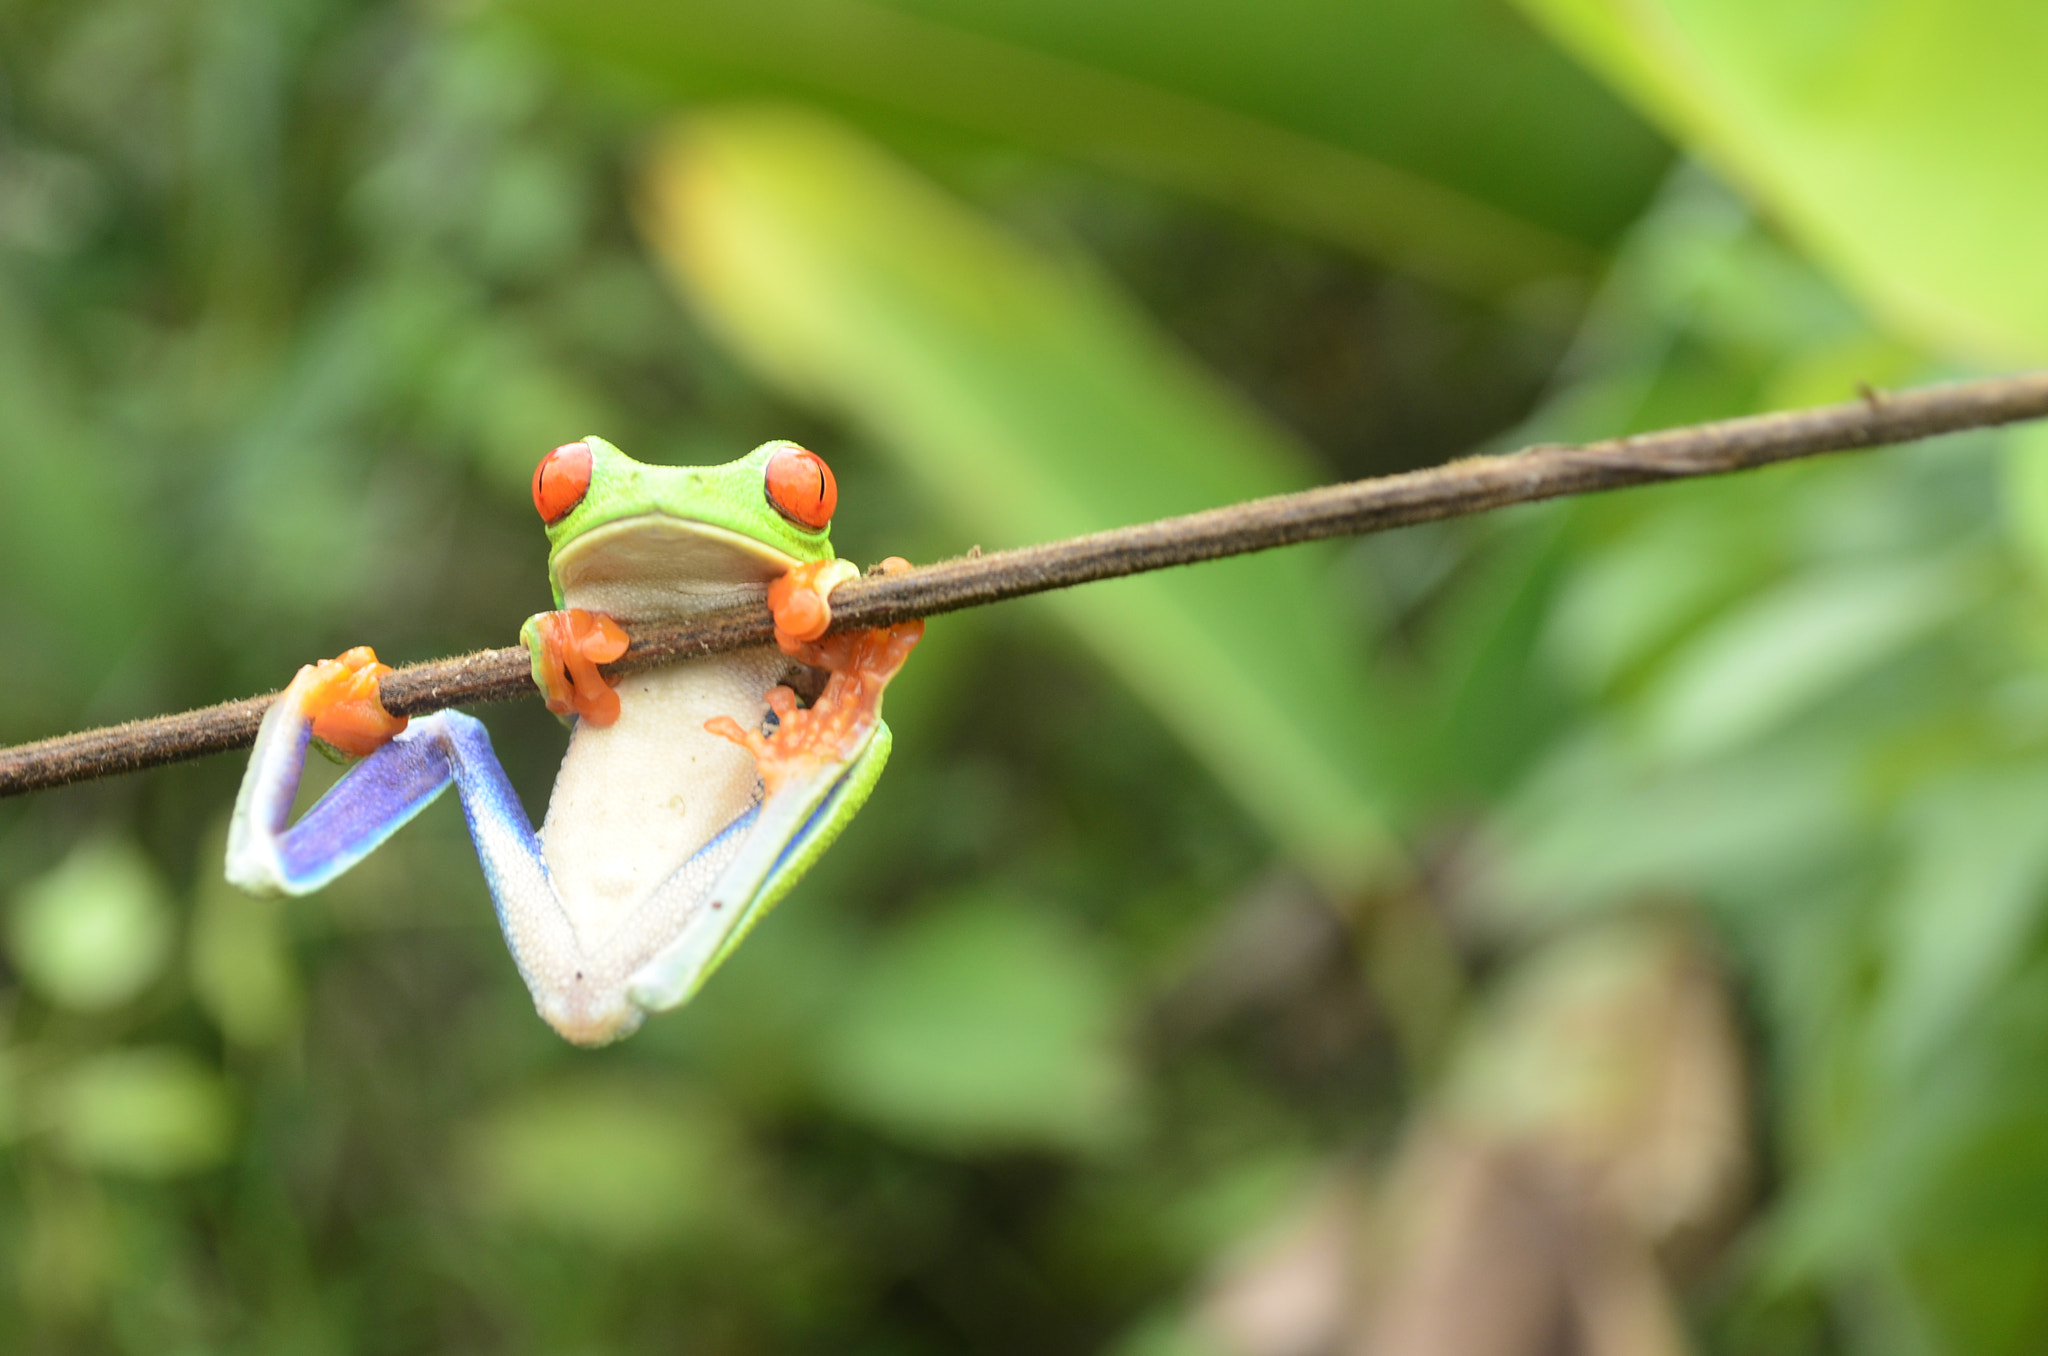 Photograph Hangin' around by Tanya George on 500px